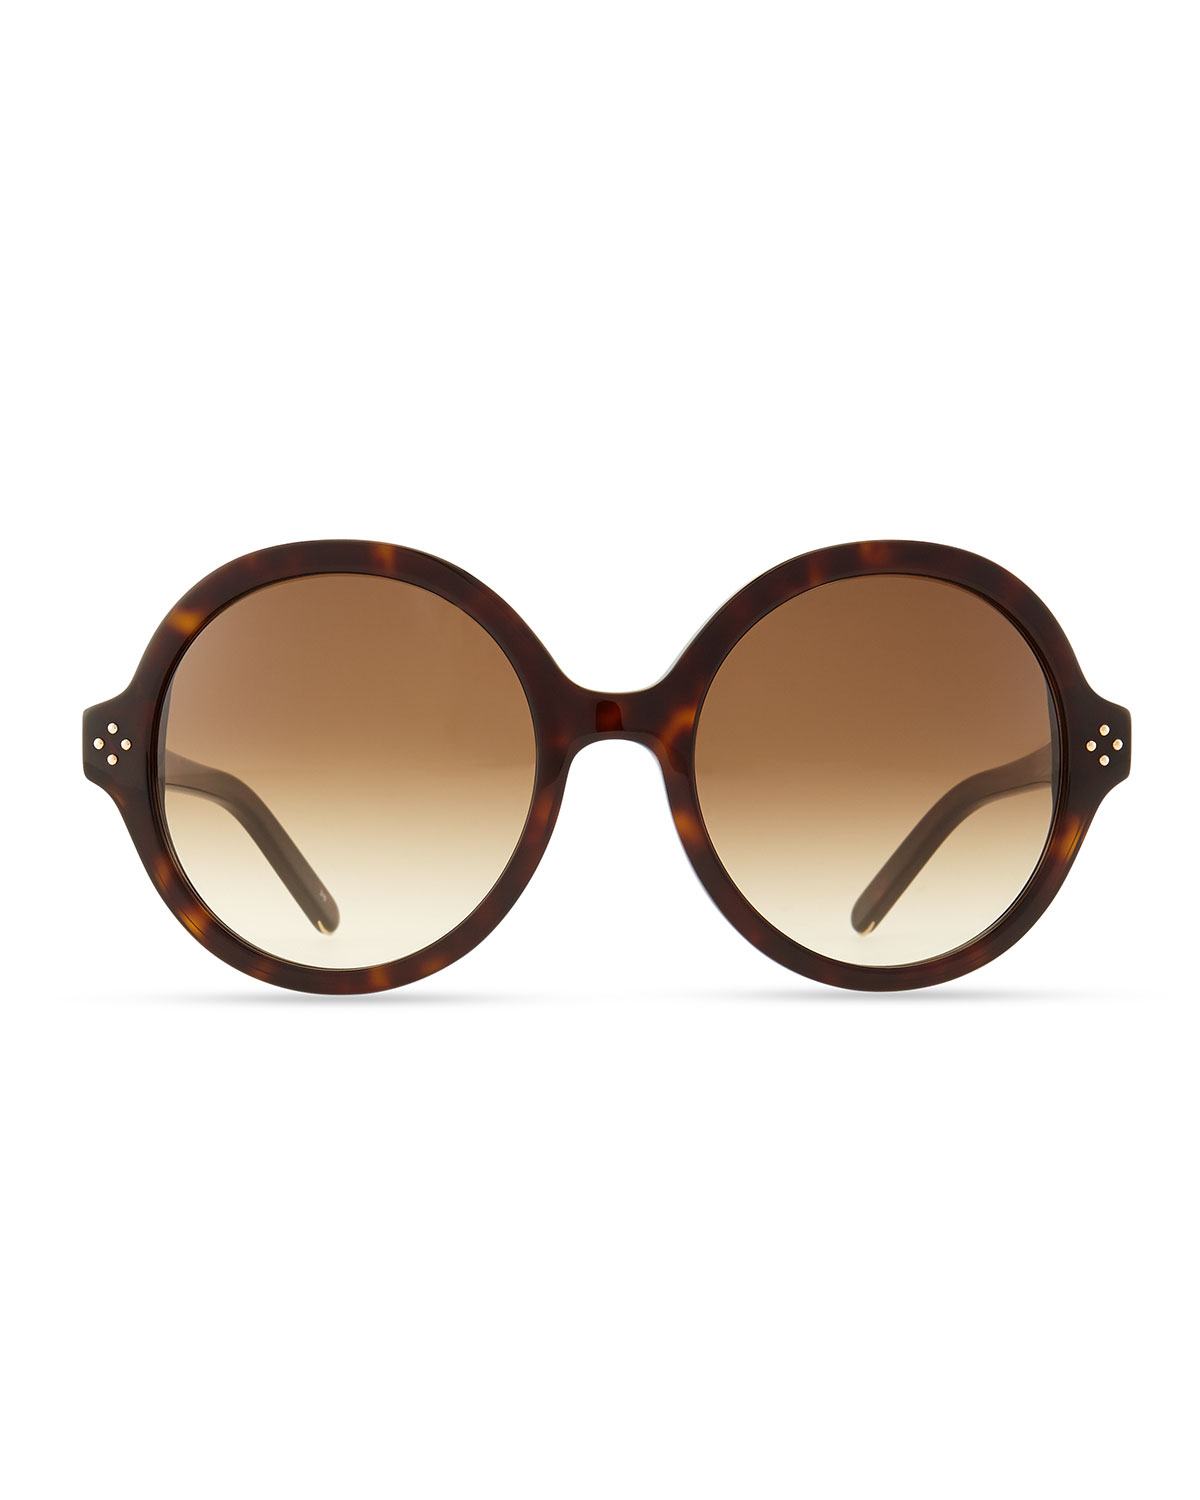 136325c0ed5 Lyst - Chloé Boxwood Round Sunglasses in Brown